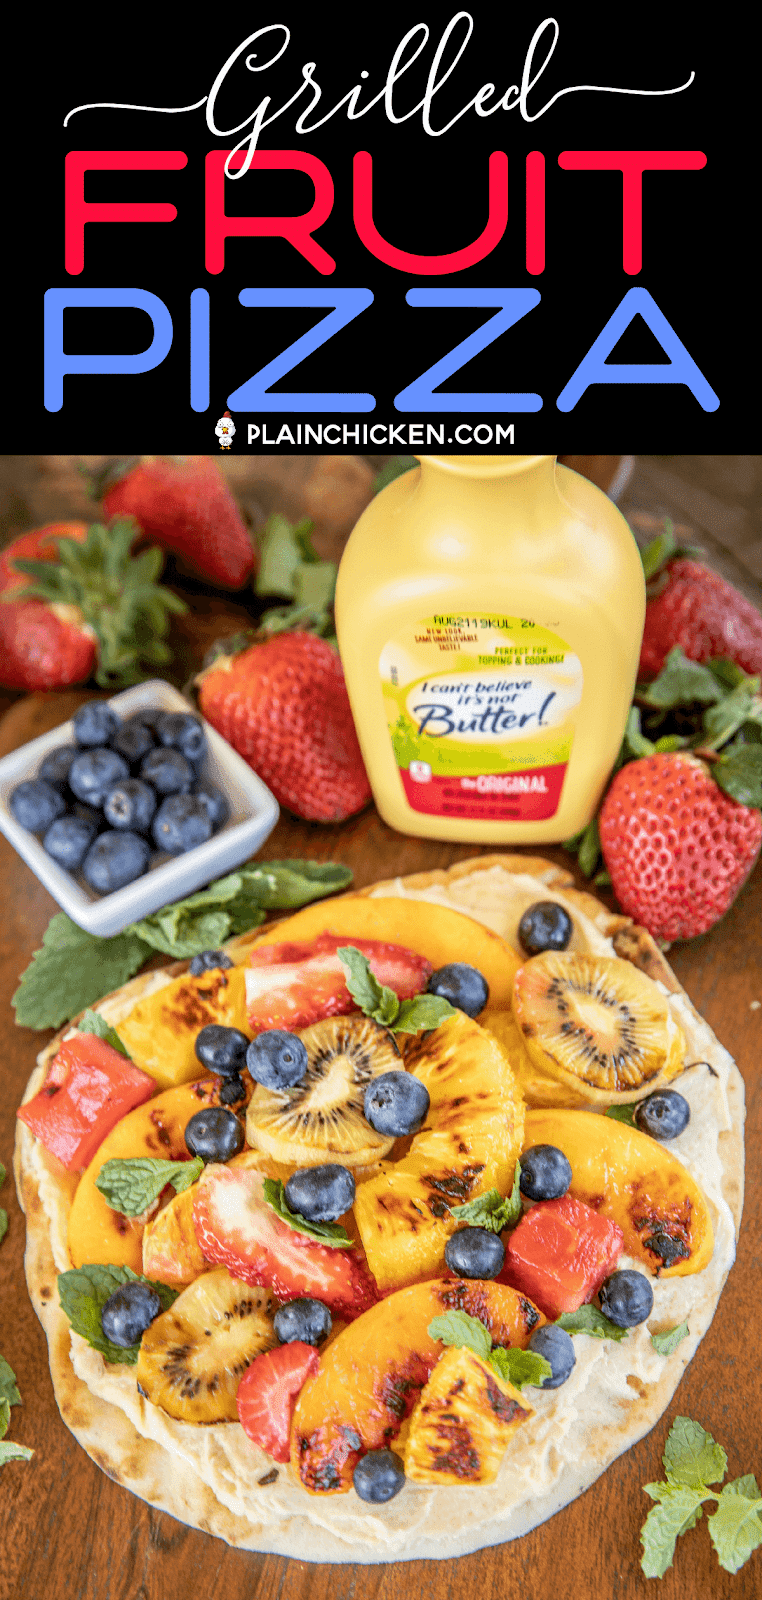 grilled fruit pizza on a cutting board